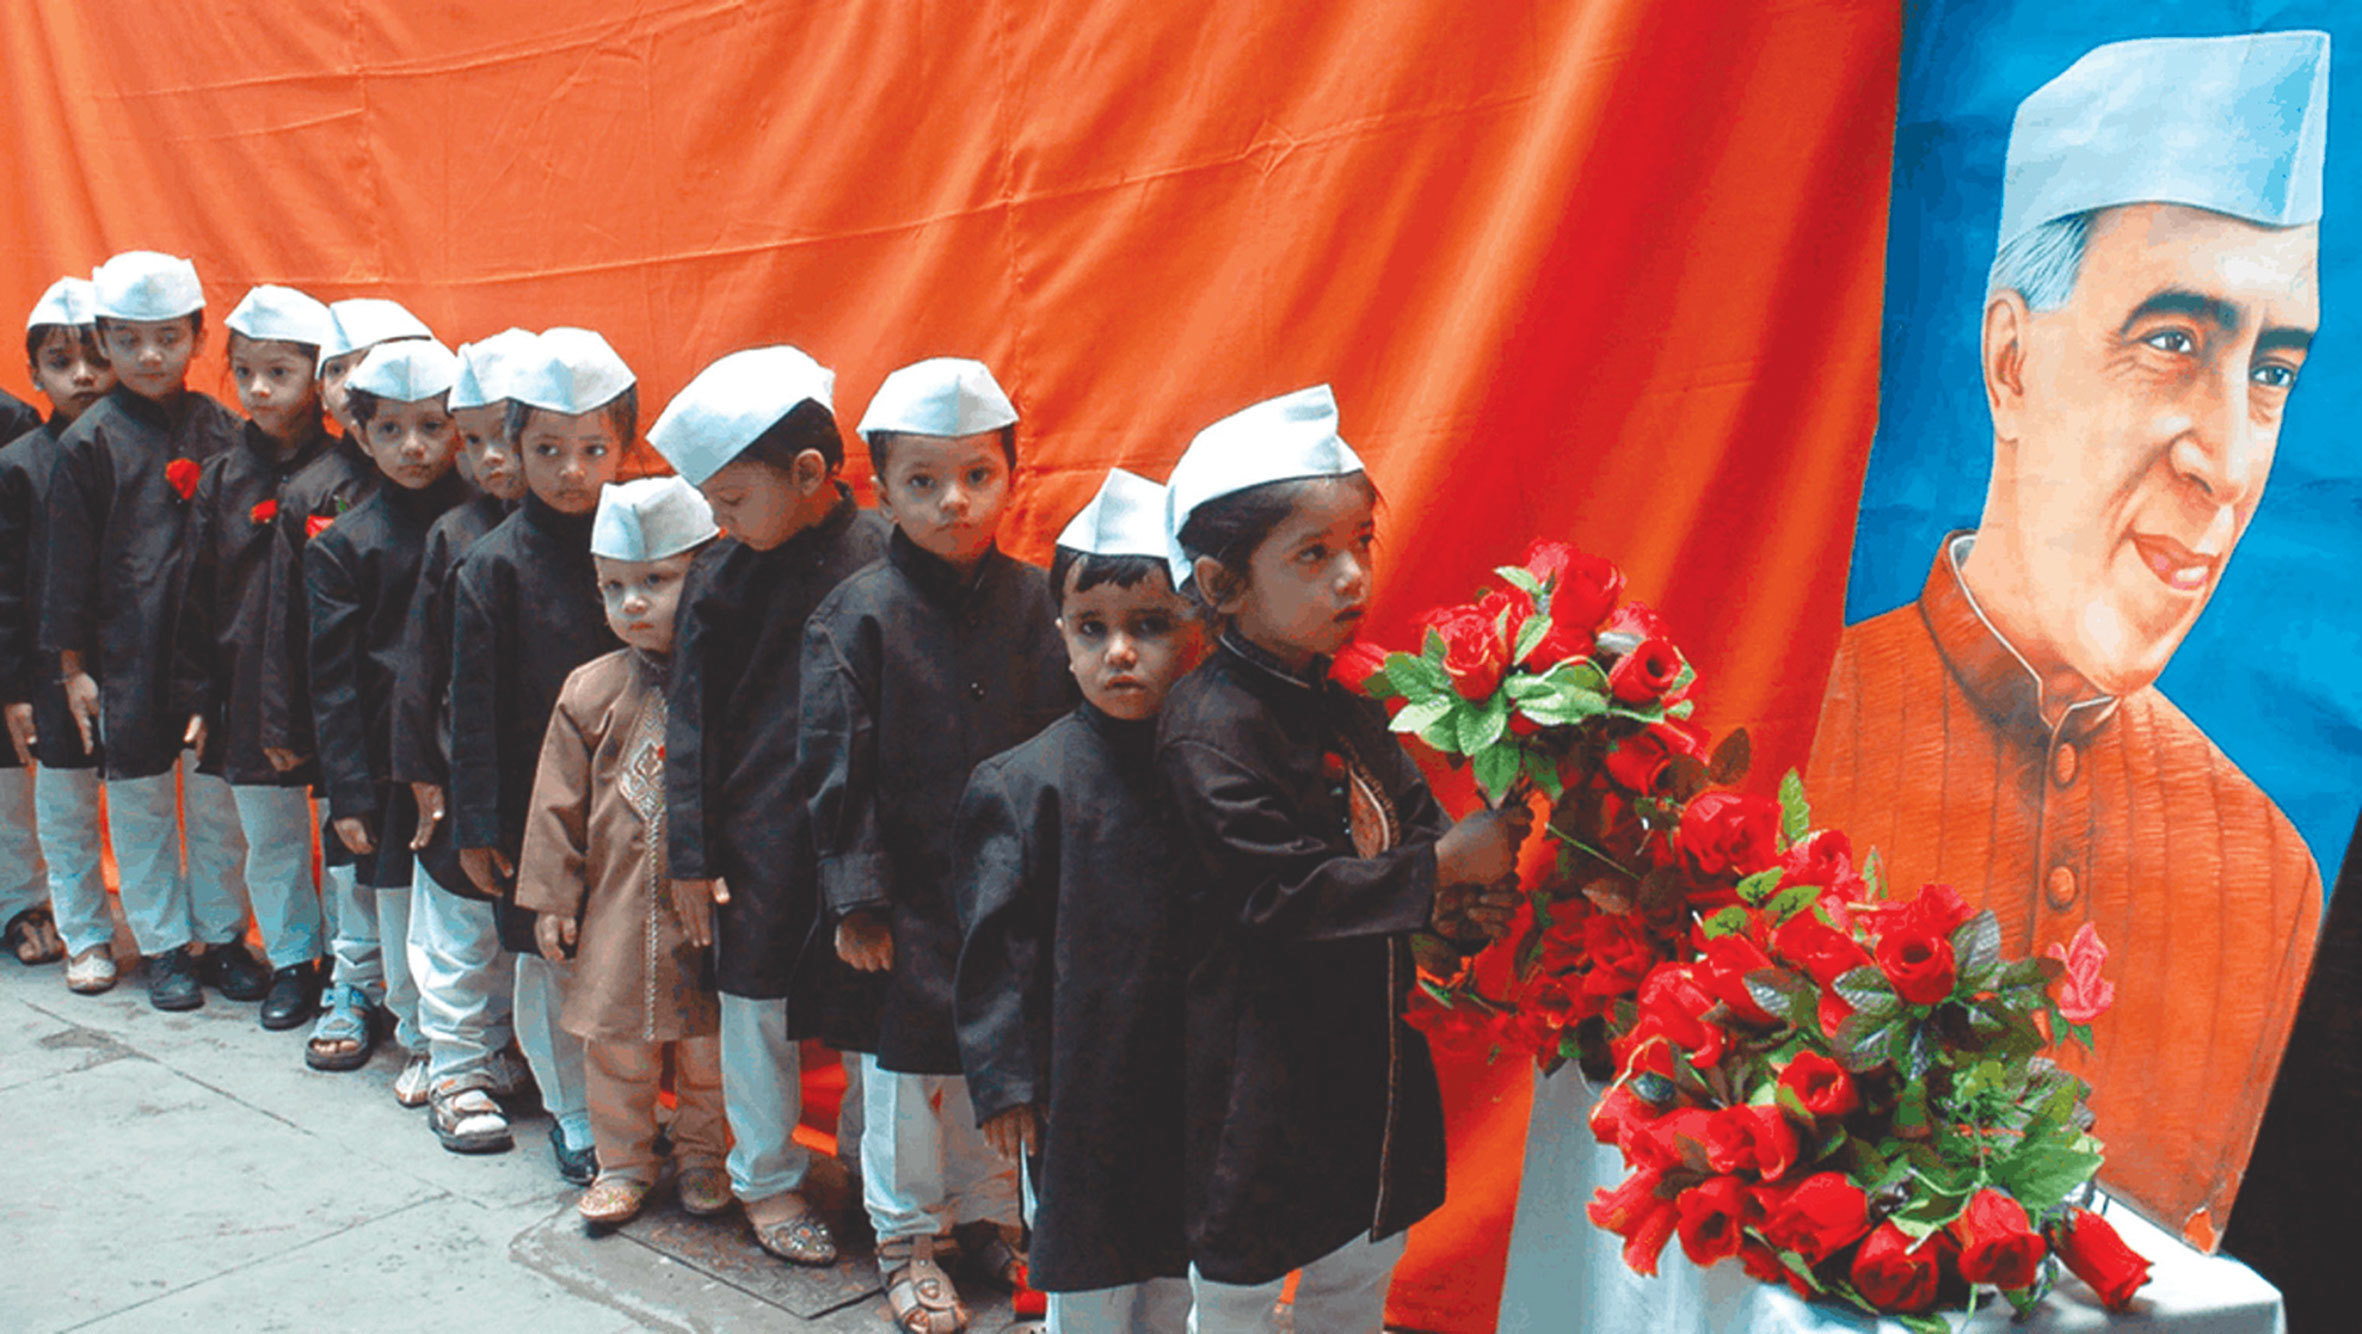 Children dressed as Jawaharlal Nehru on his birth anniversary celebrated across India as  Children's Day.	—Reuters